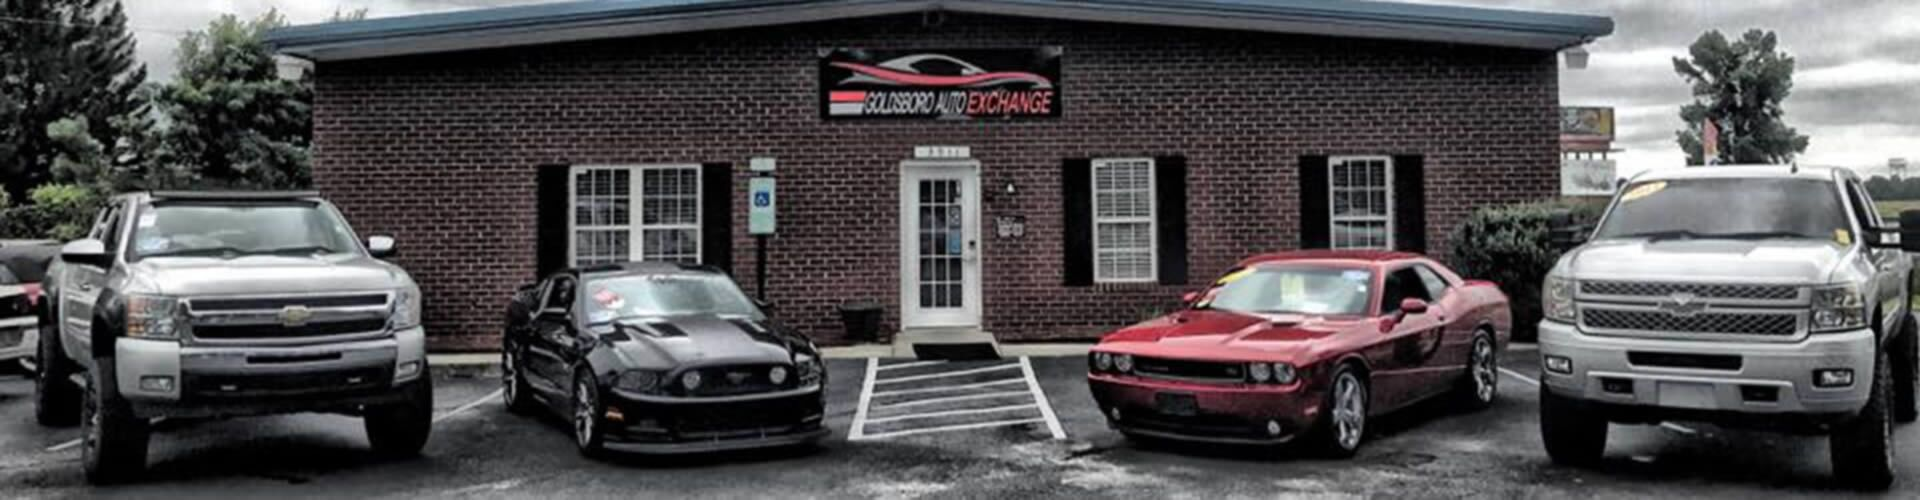 Pre Owned Dealership Goldsboro Nc Used Cars Goldsboro Auto Exchange